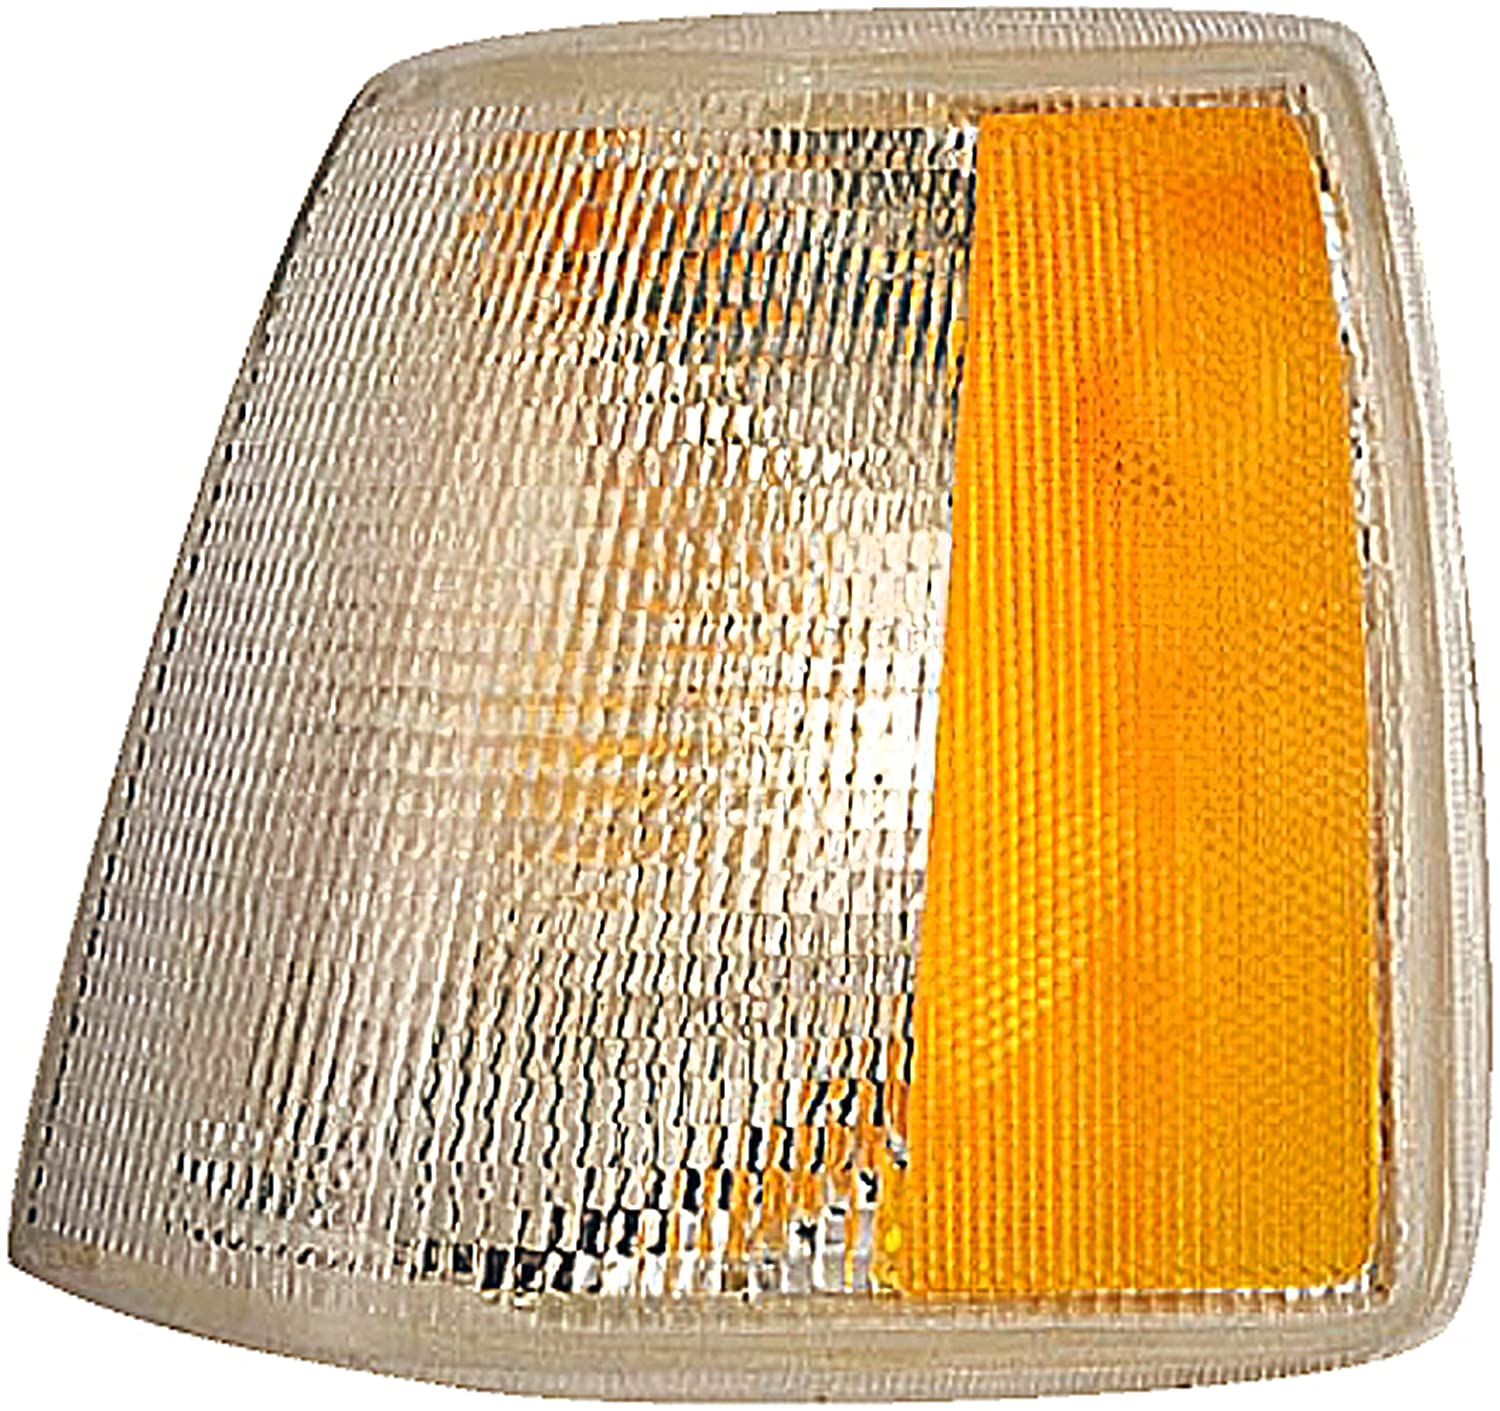 Dorman 1630831 Volvo Front Passenger Side Parking/Turn Signal Light Assembly